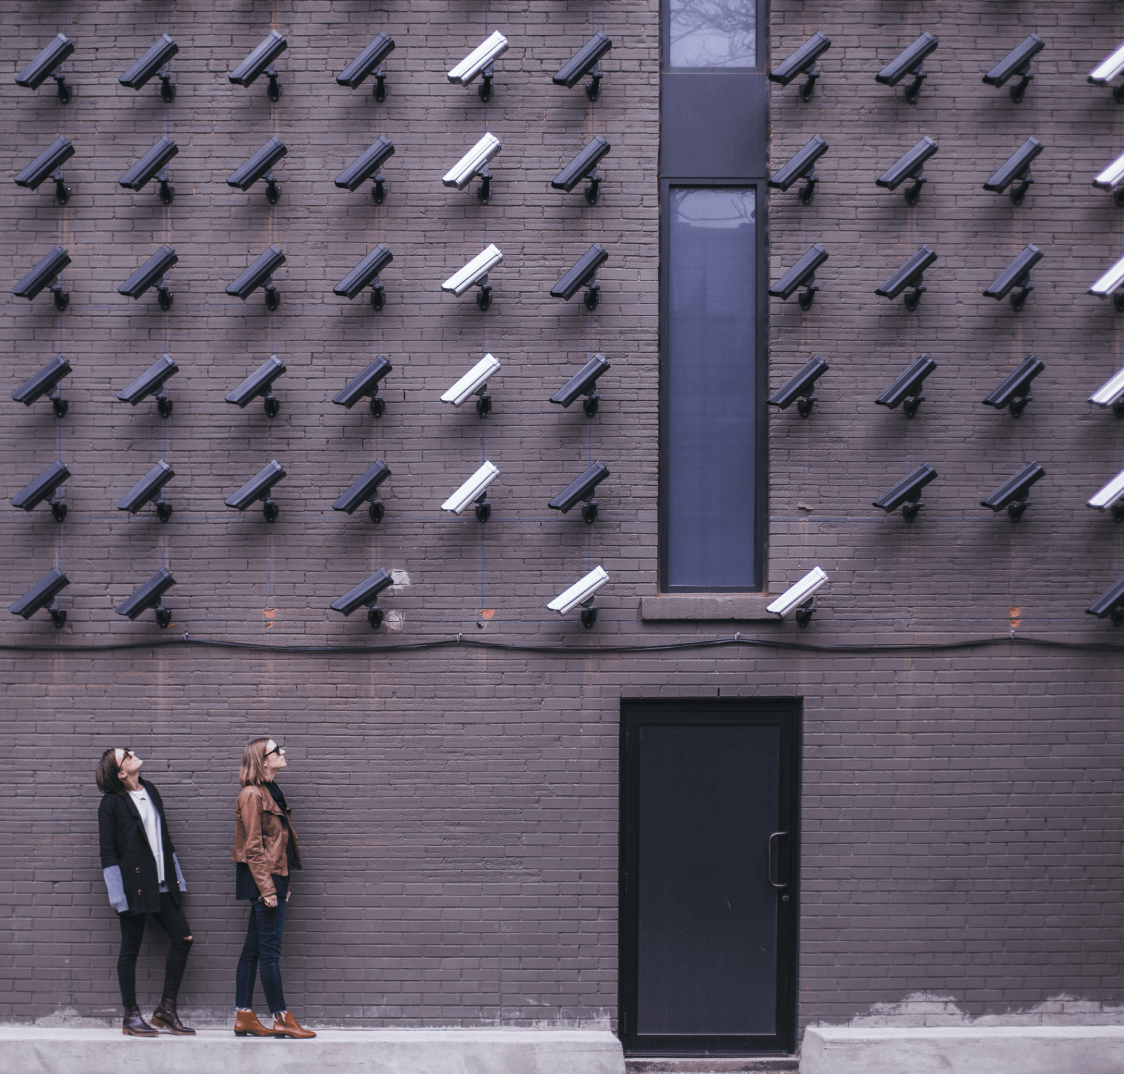 People looking at a wall of cameras